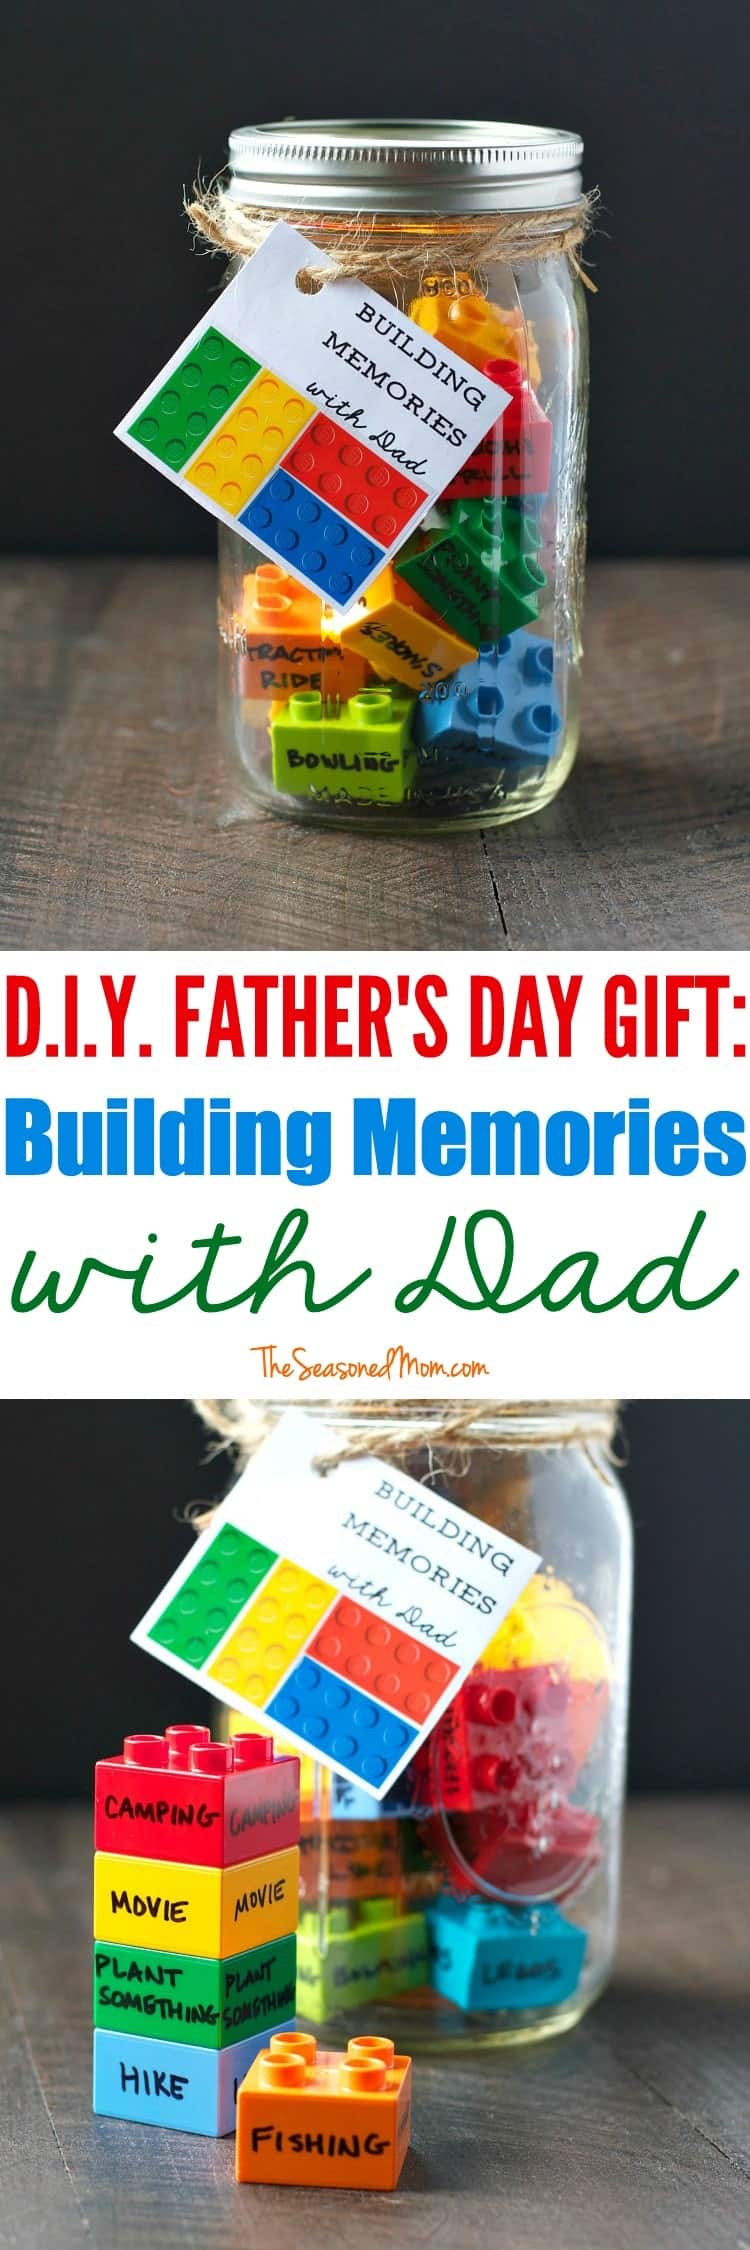 Diy Father 39 S Day Gift Building Memories With Dad The